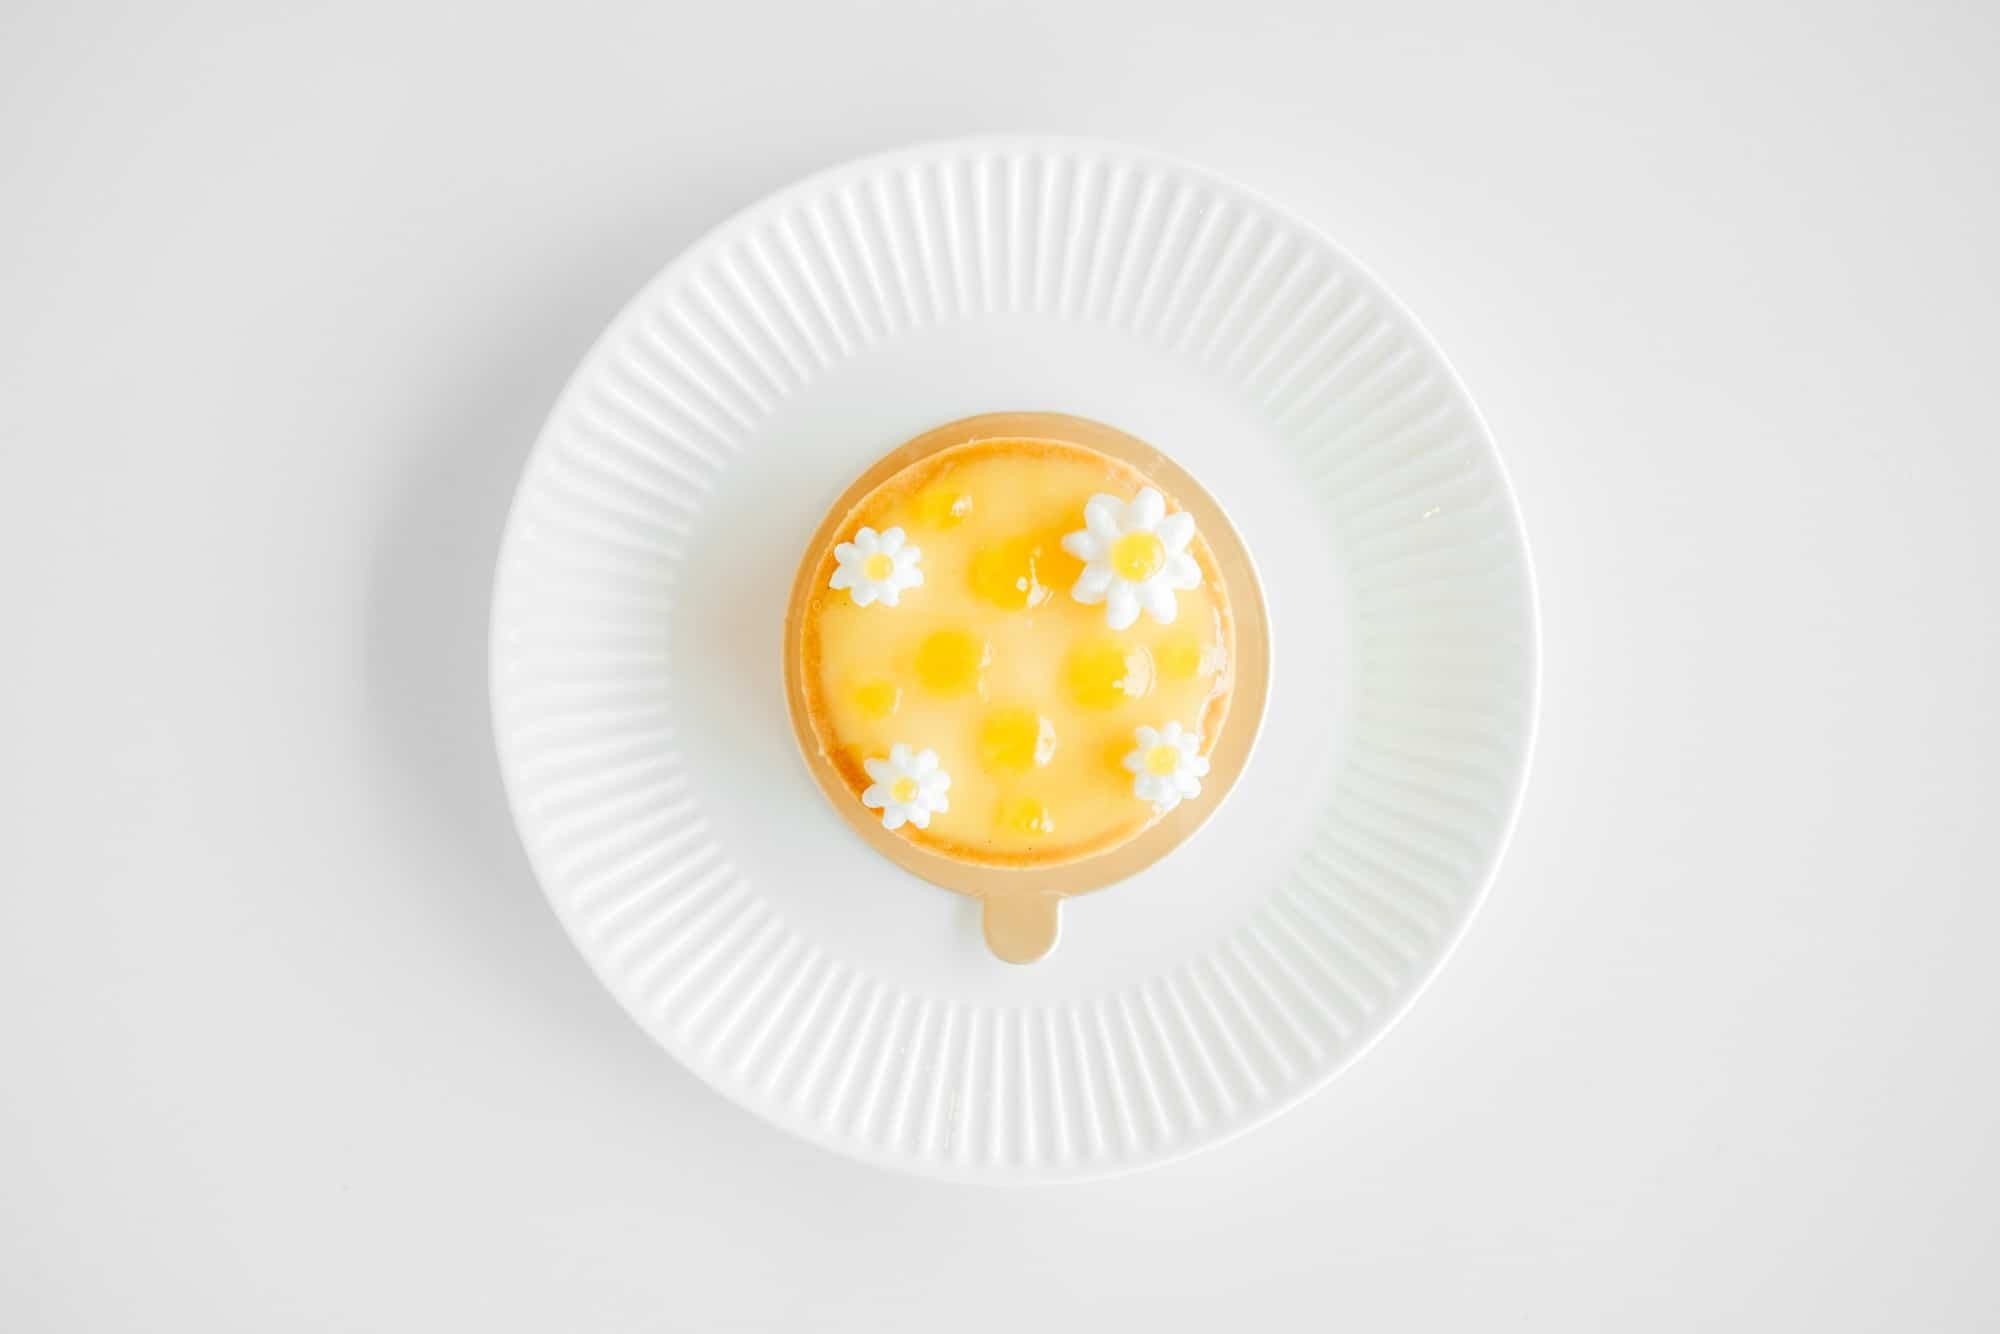 White plate with yellow pudding dessert in center